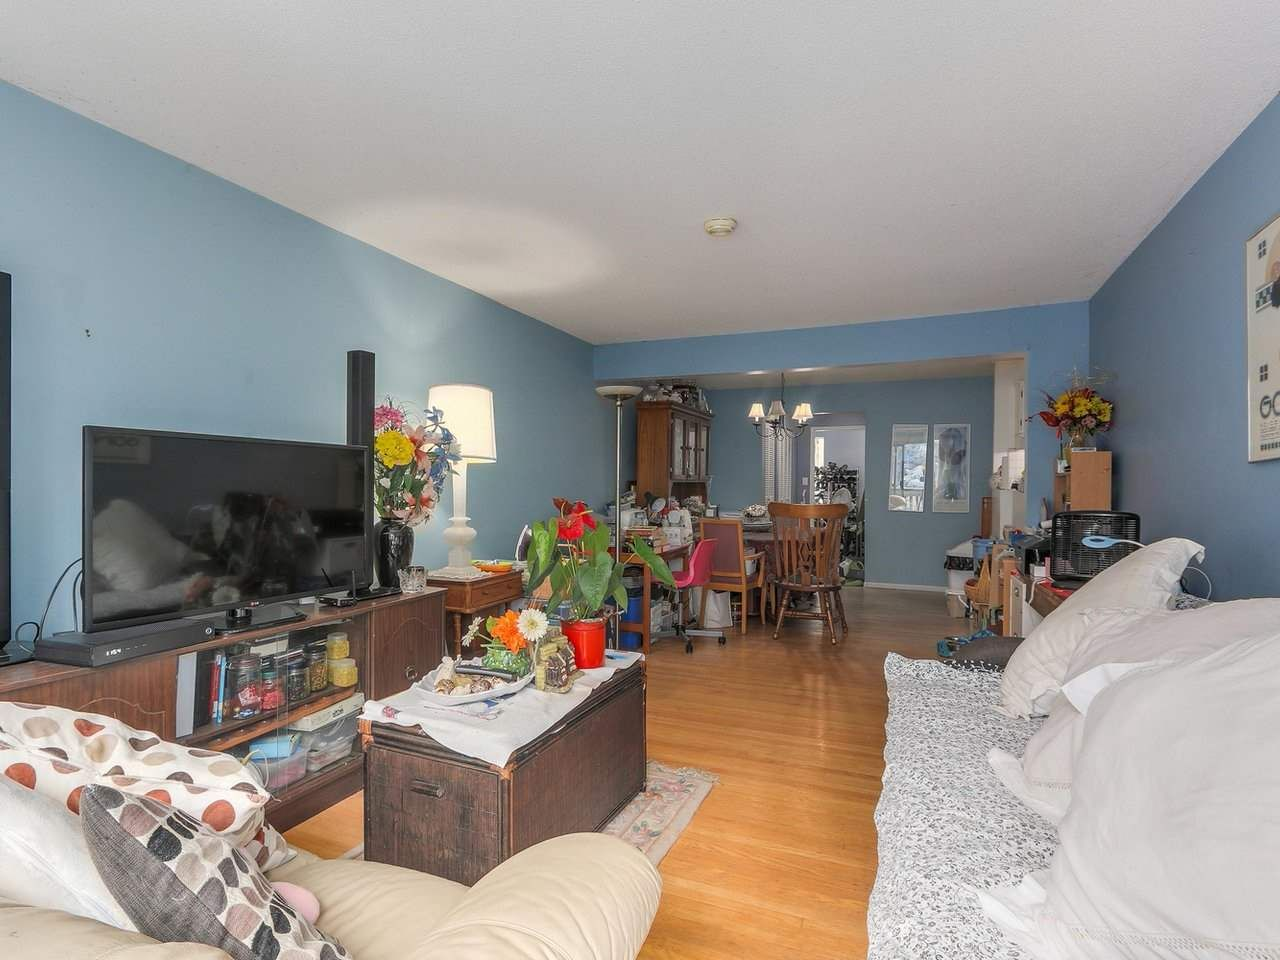 """Photo 5: Photos: 15 1811 PURCELL Way in North Vancouver: Lynnmour Condo for sale in """"LYNNMOUR SOUTH"""" : MLS®# R2276321"""